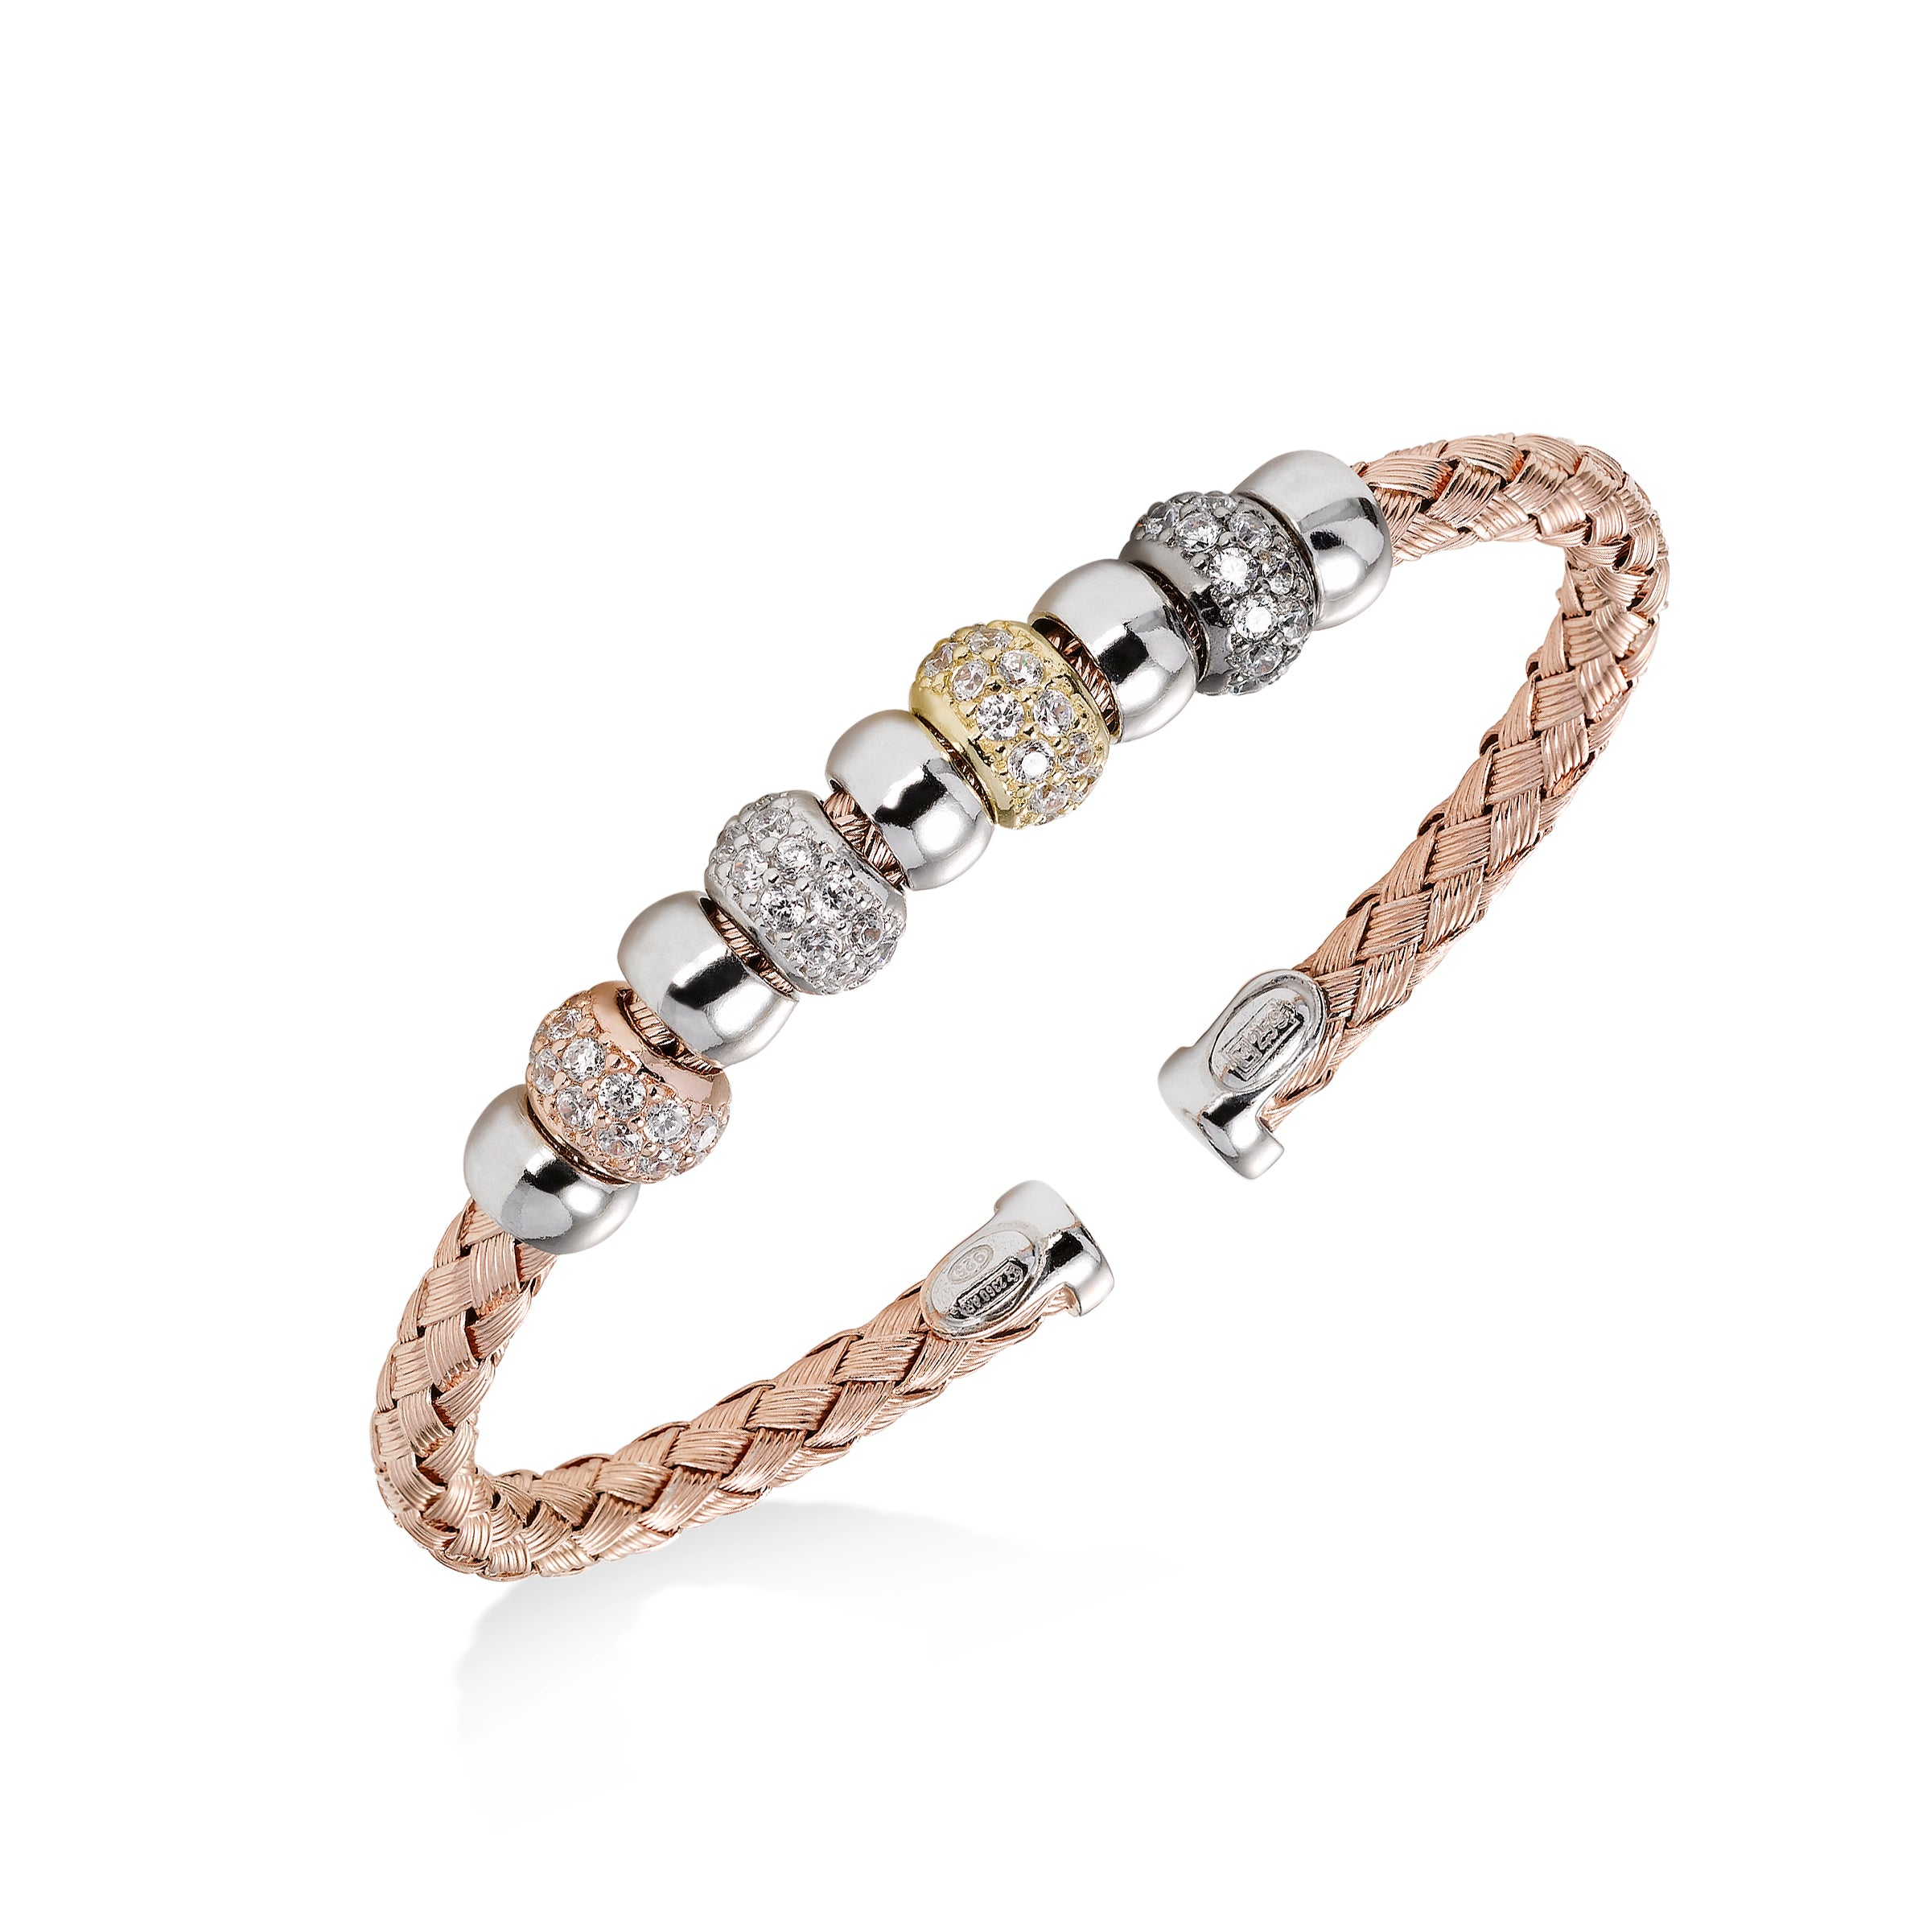 Woven Cuff with CZ Rondelles, Sterling and Rose Gold Plating